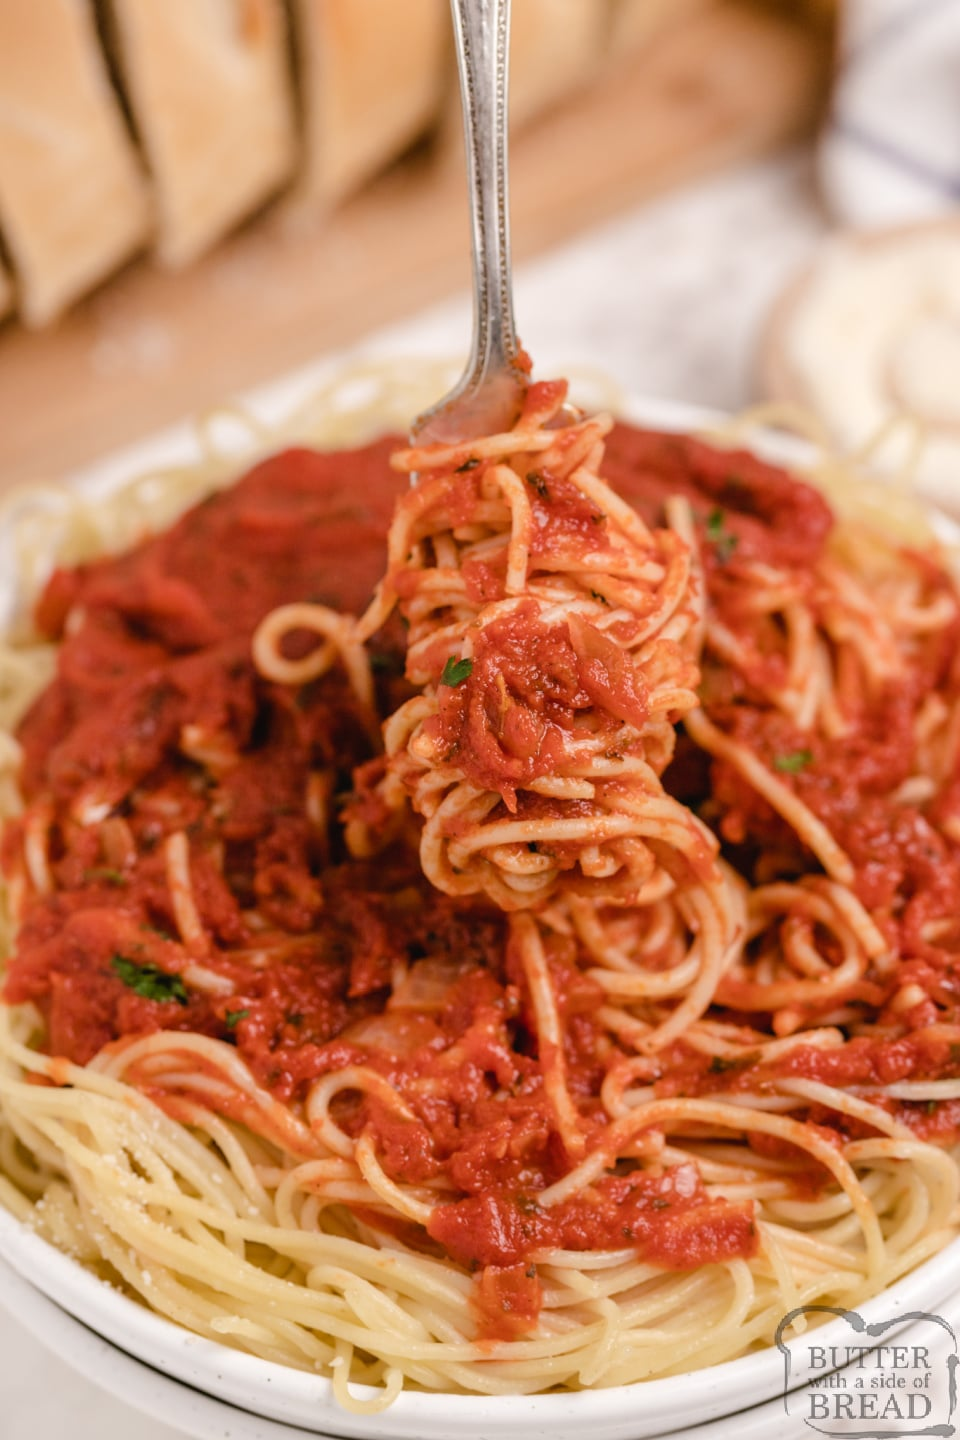 Crockpot Spaghetti Sauce made with a delicious blend of spices and tomatoes. Best homemade spaghetti sauce recipe that is simmered for hours in a slow cooker to achieve the perfect flavor.